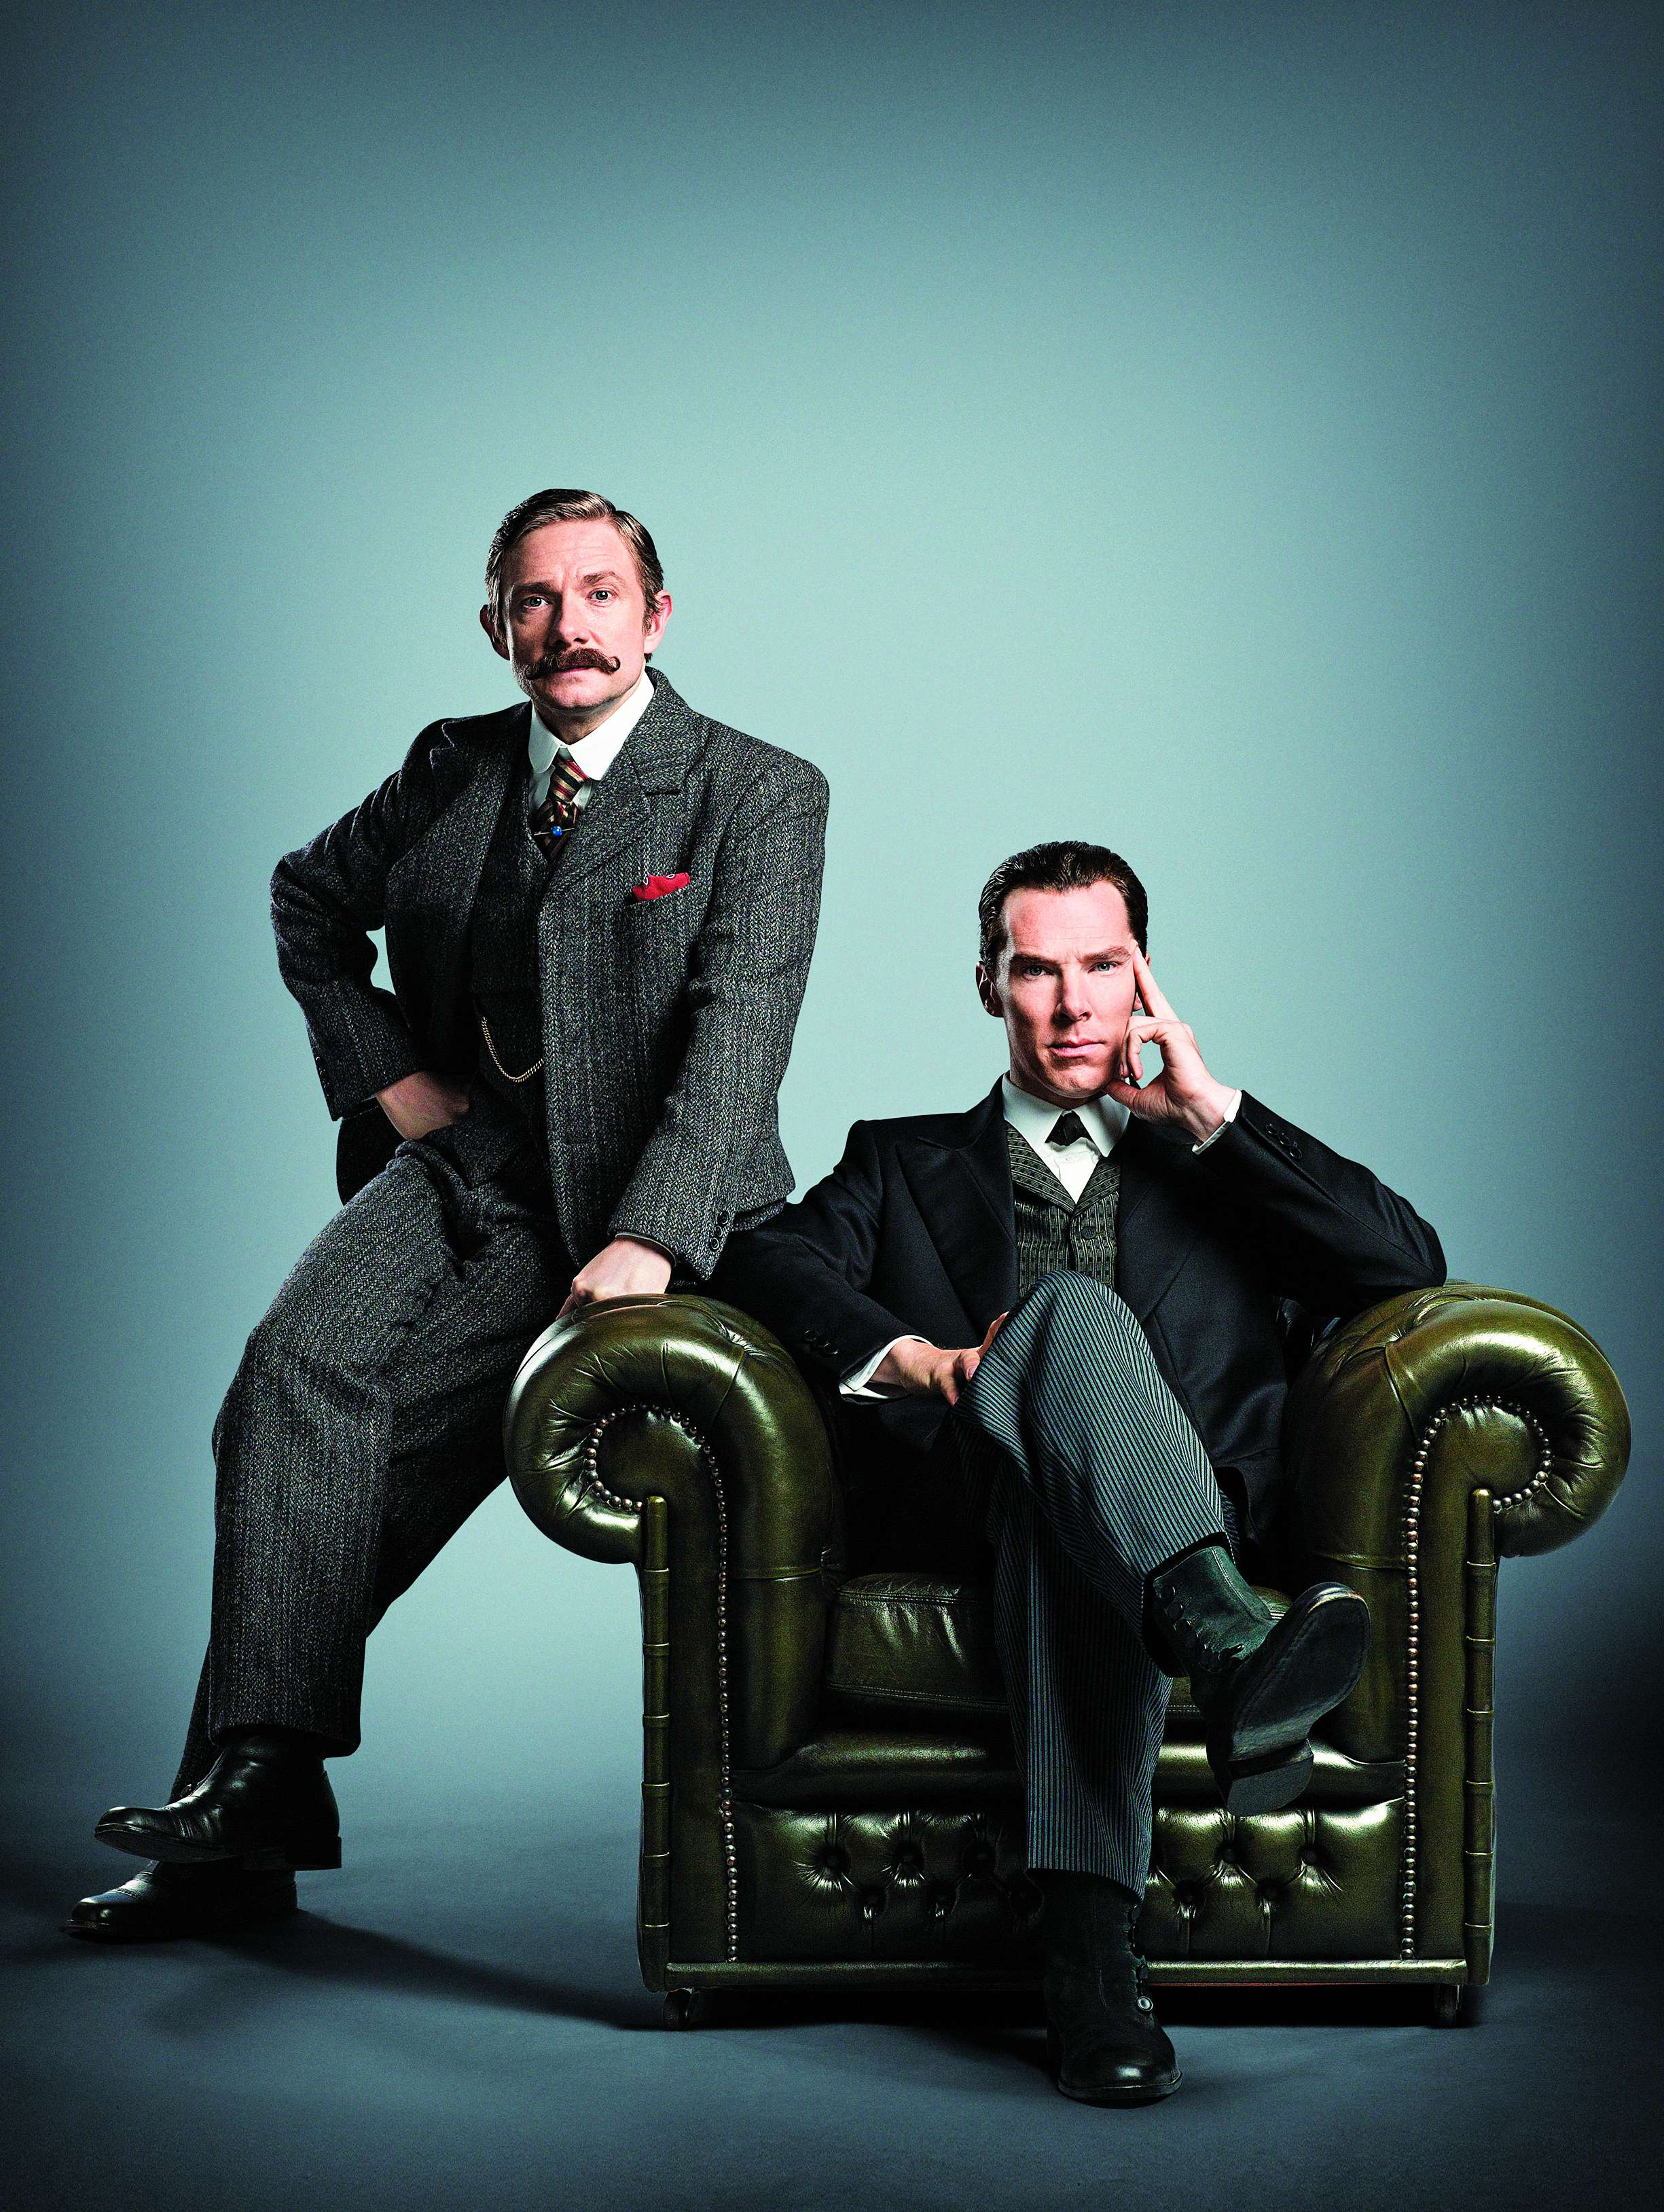 Benedict Cumberbatch and Martin Freeman in the upcoming Sherlock special